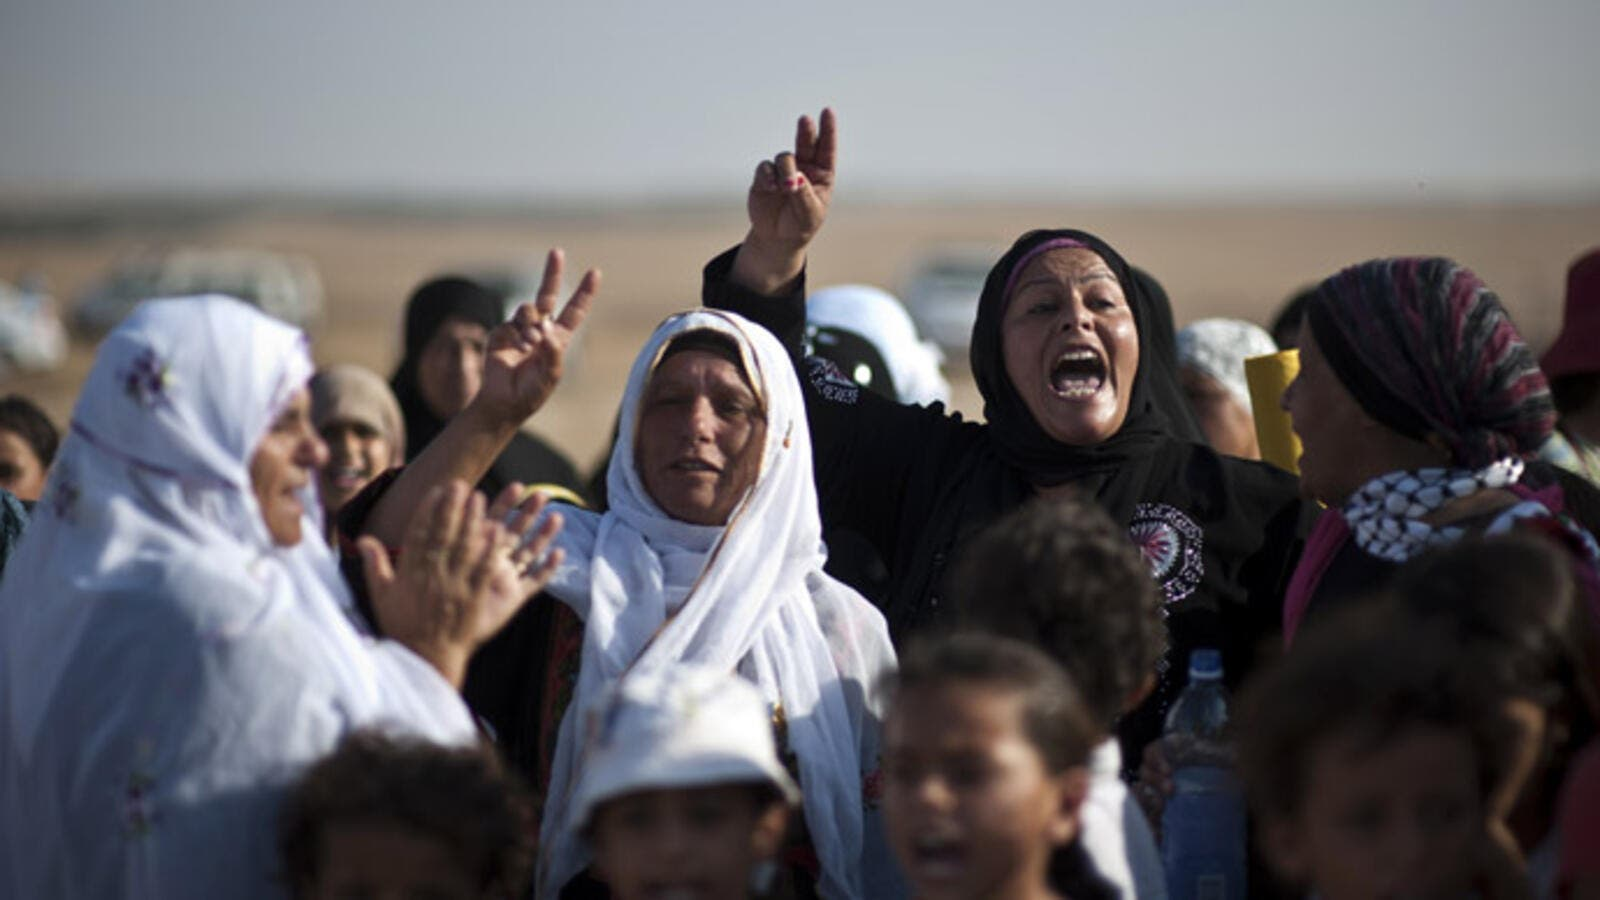 Bedouin women shout slogans during a protest in the Negev desert. (AFP/File)